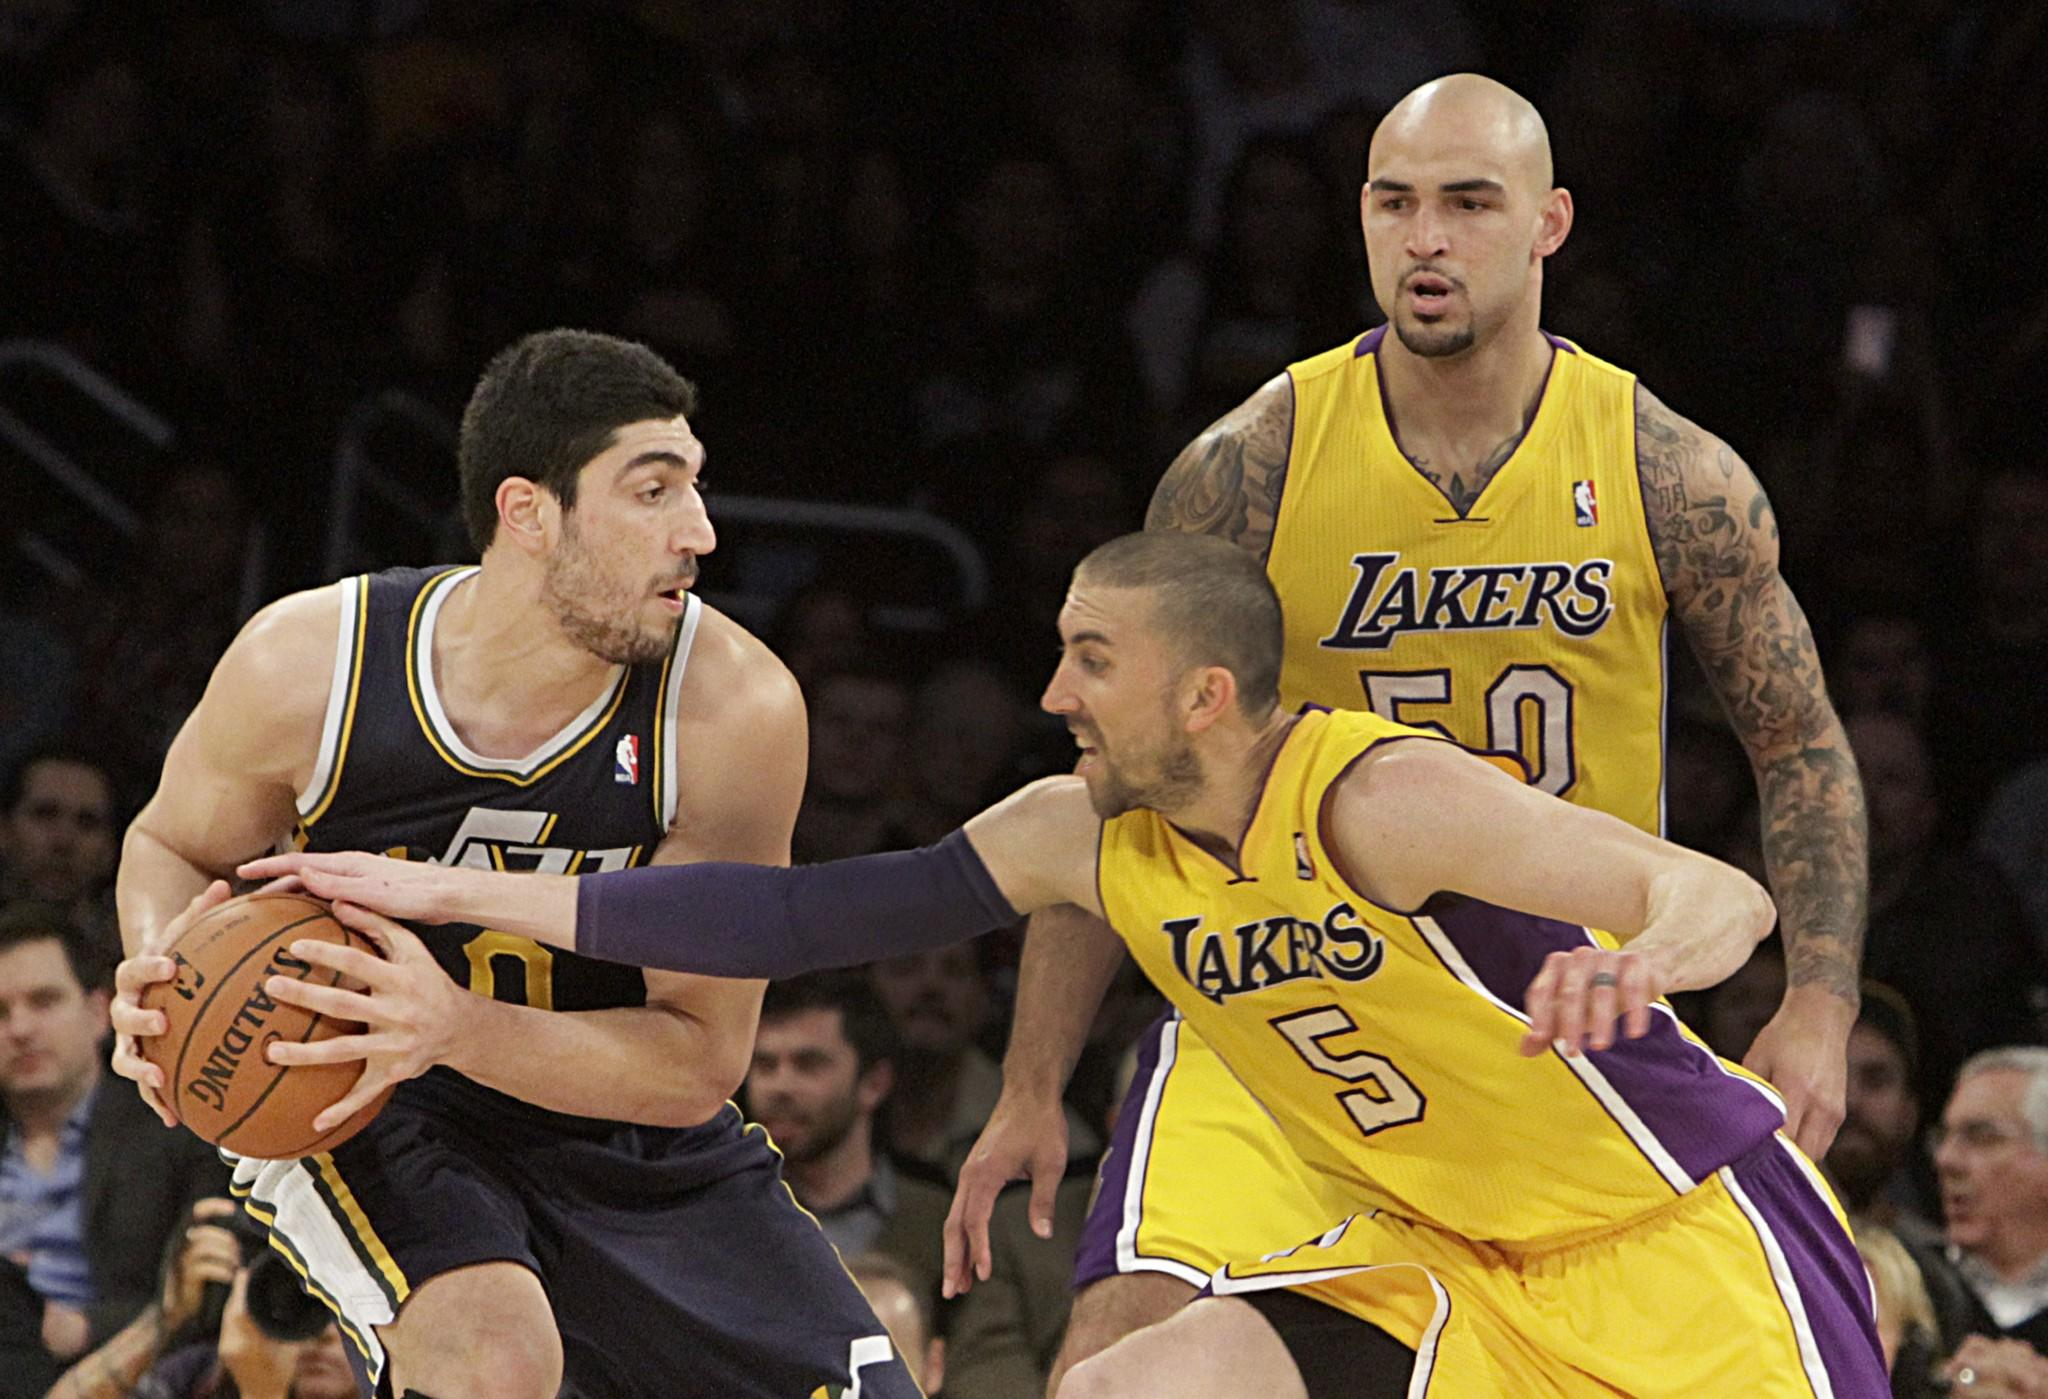 Utah's Enes Kanter holds the ball as Steve Blake reaches in during the second half of the Lakers' loss Tuesday to the Jazz, 96-79, at Staples Center.